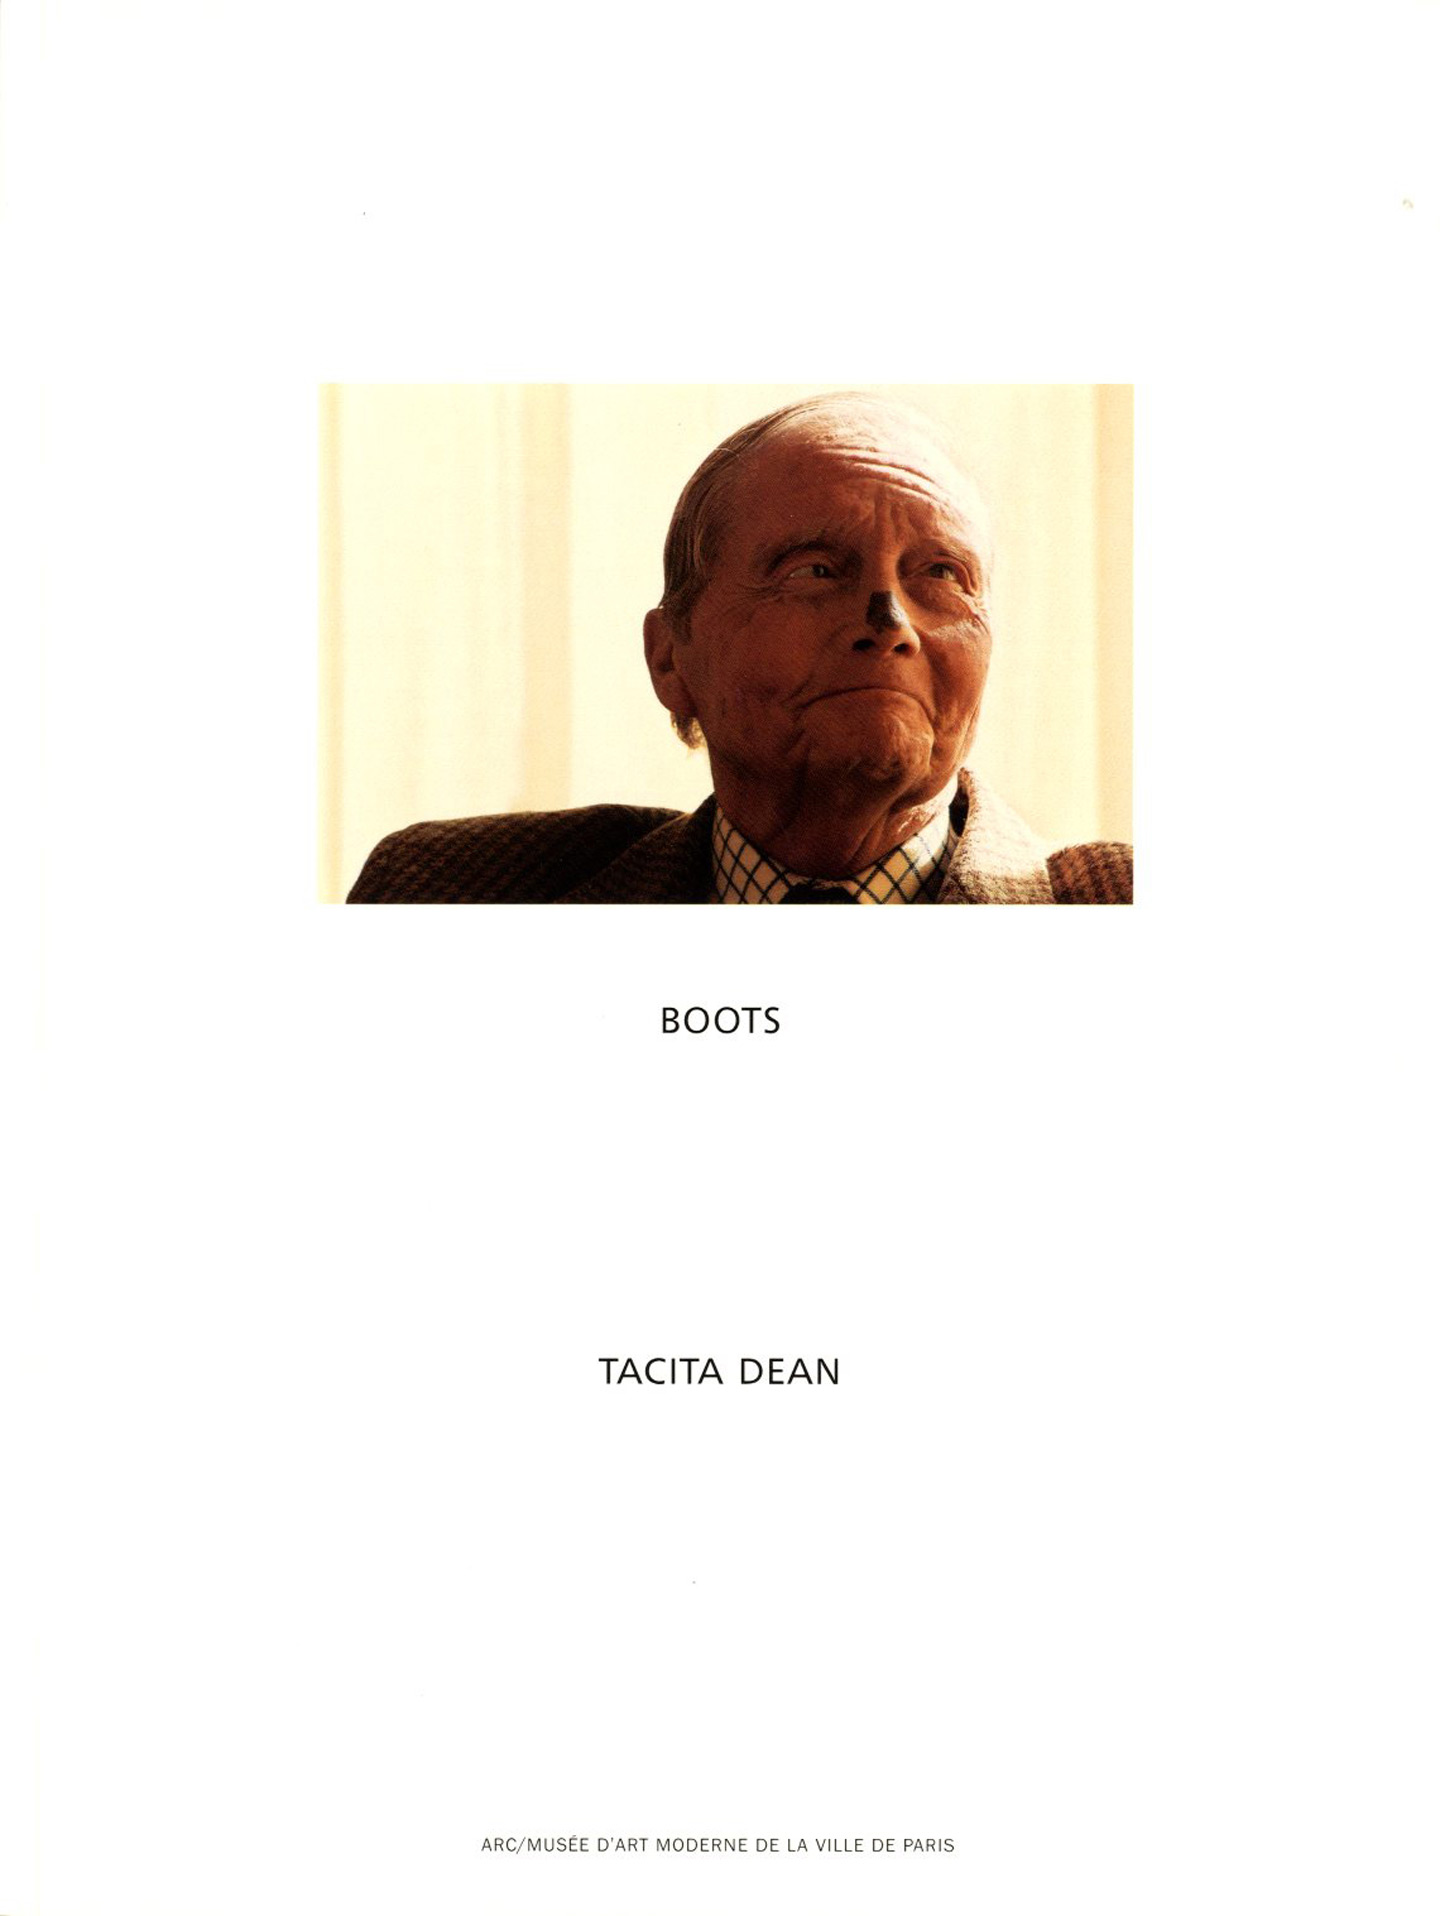 Tacita Dean: Seven Books (Selected Writings, 12.10.02 - 21.12.02, W.G. Sebald, The Russian Ending, Boots, Complete Works and Filmography 1991-2003, and Essays)